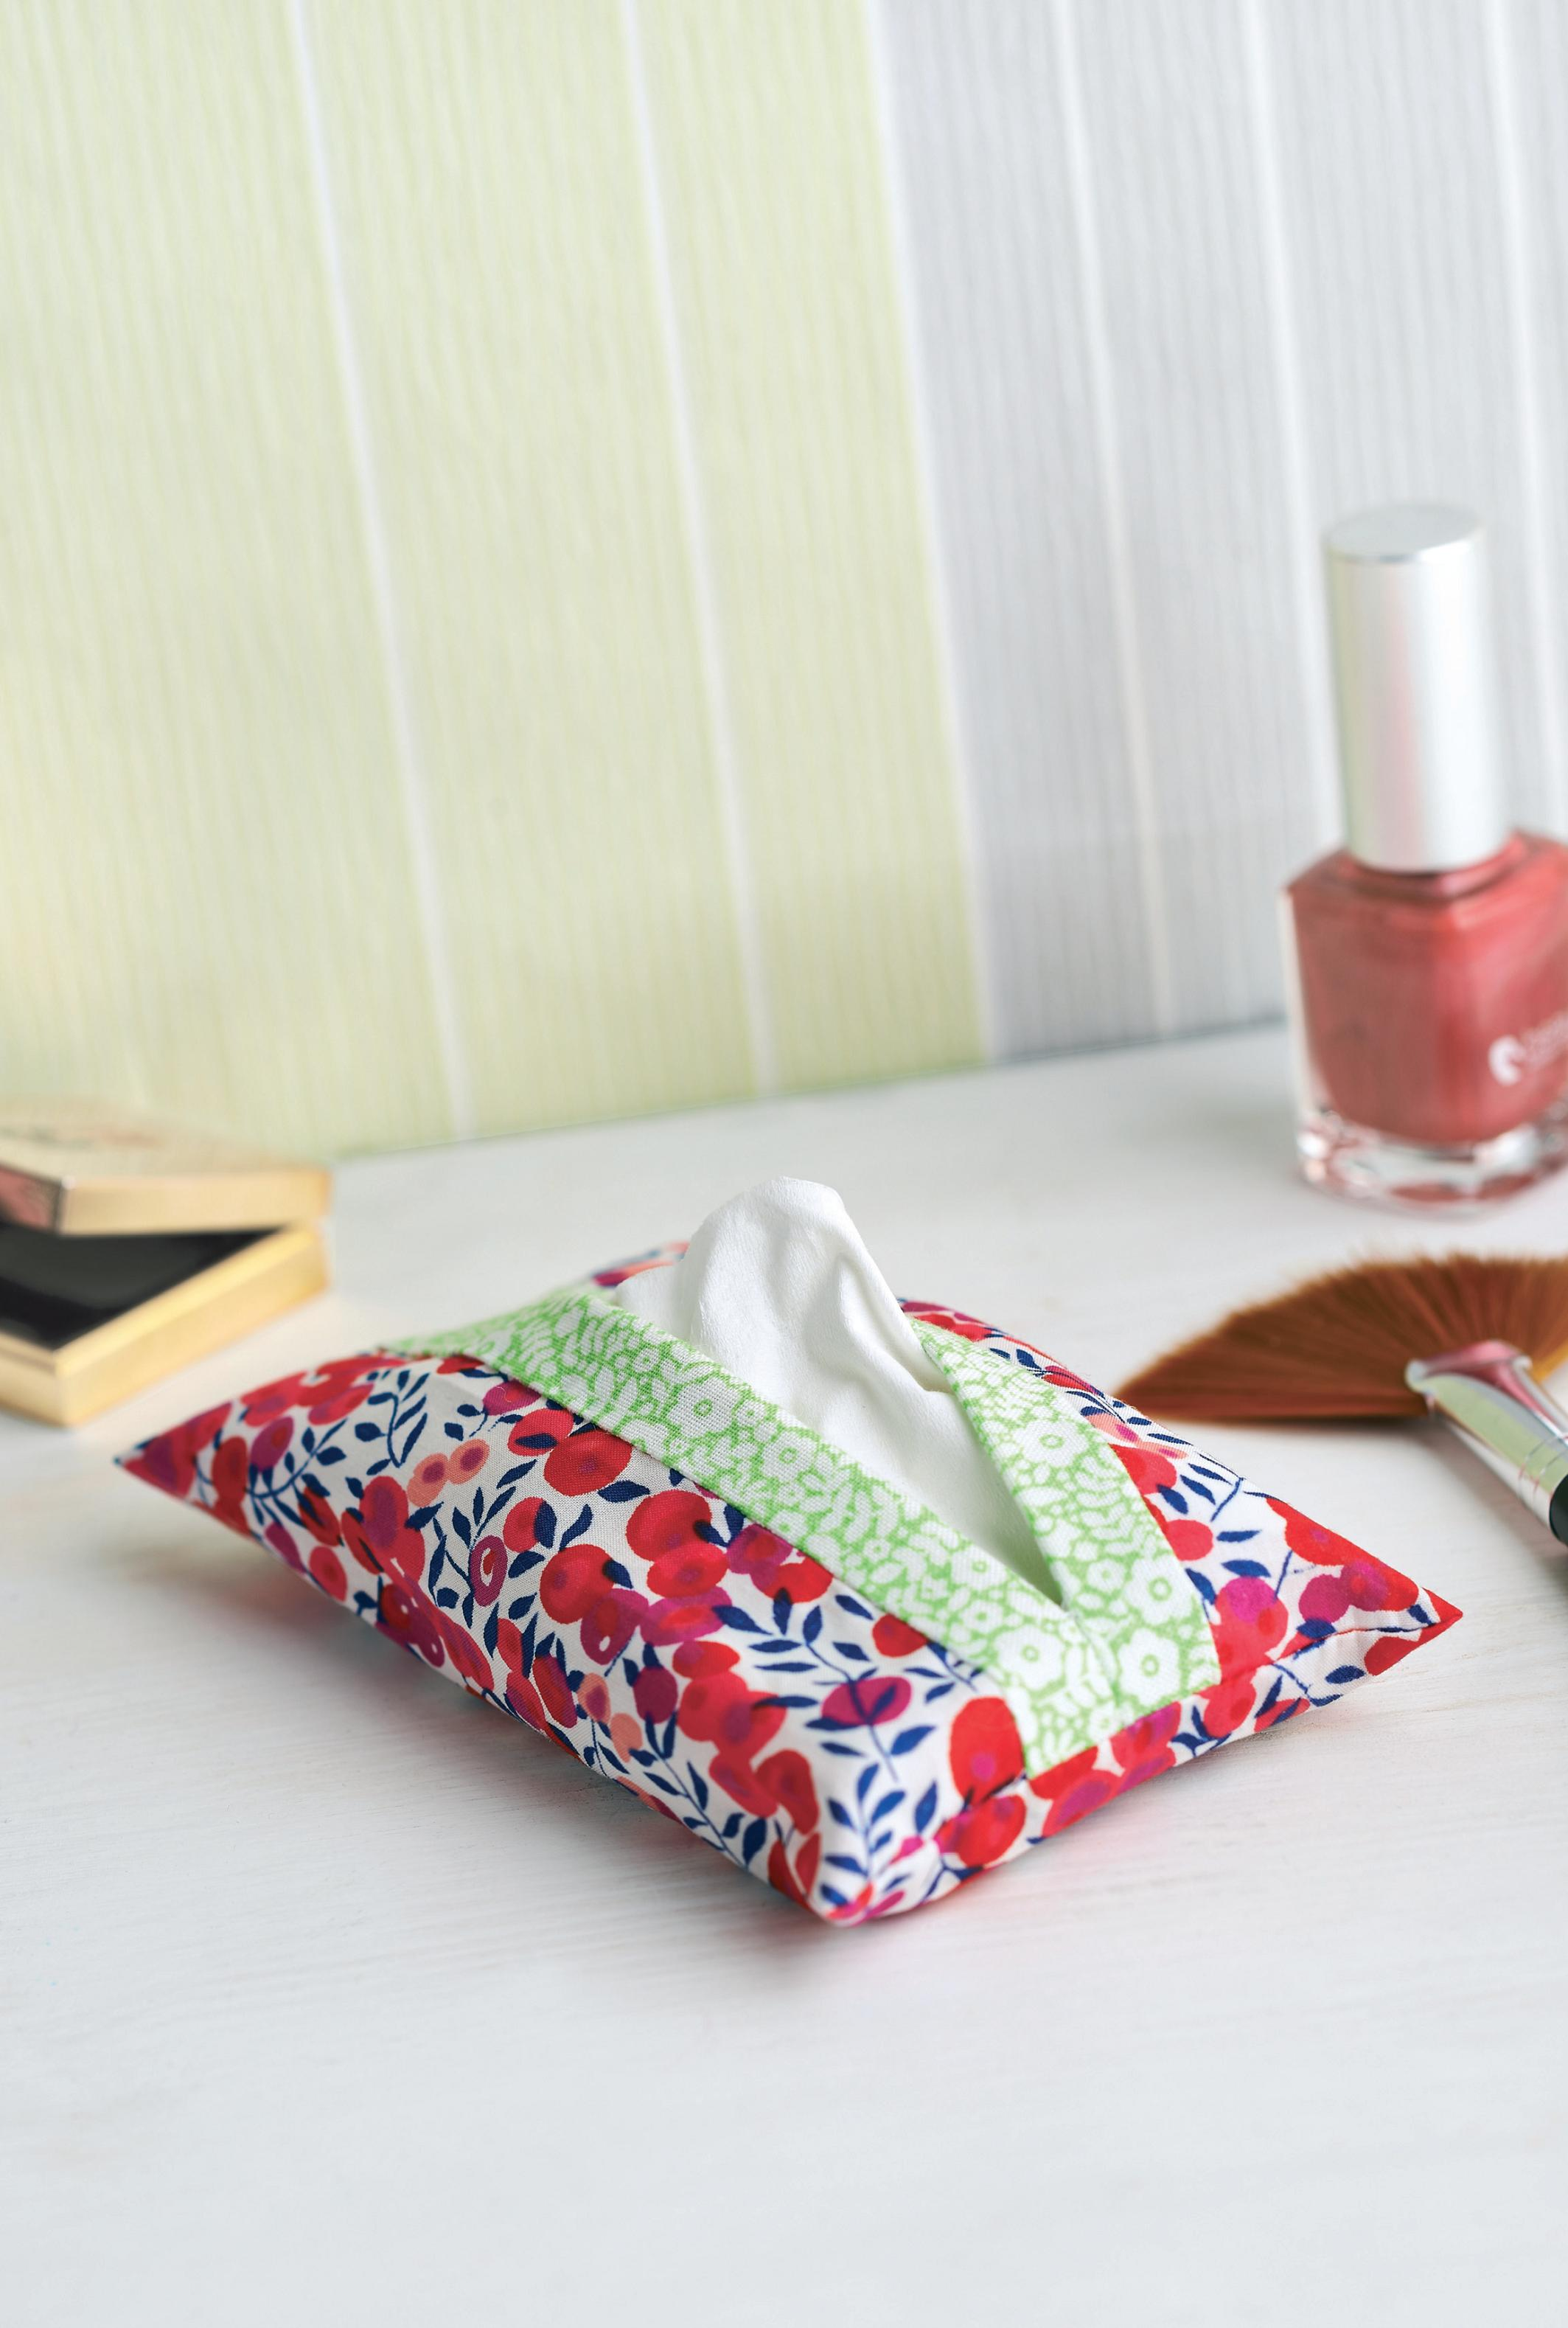 Lunchtime Make Floral Tissue Pouch Free Sewing Patterns